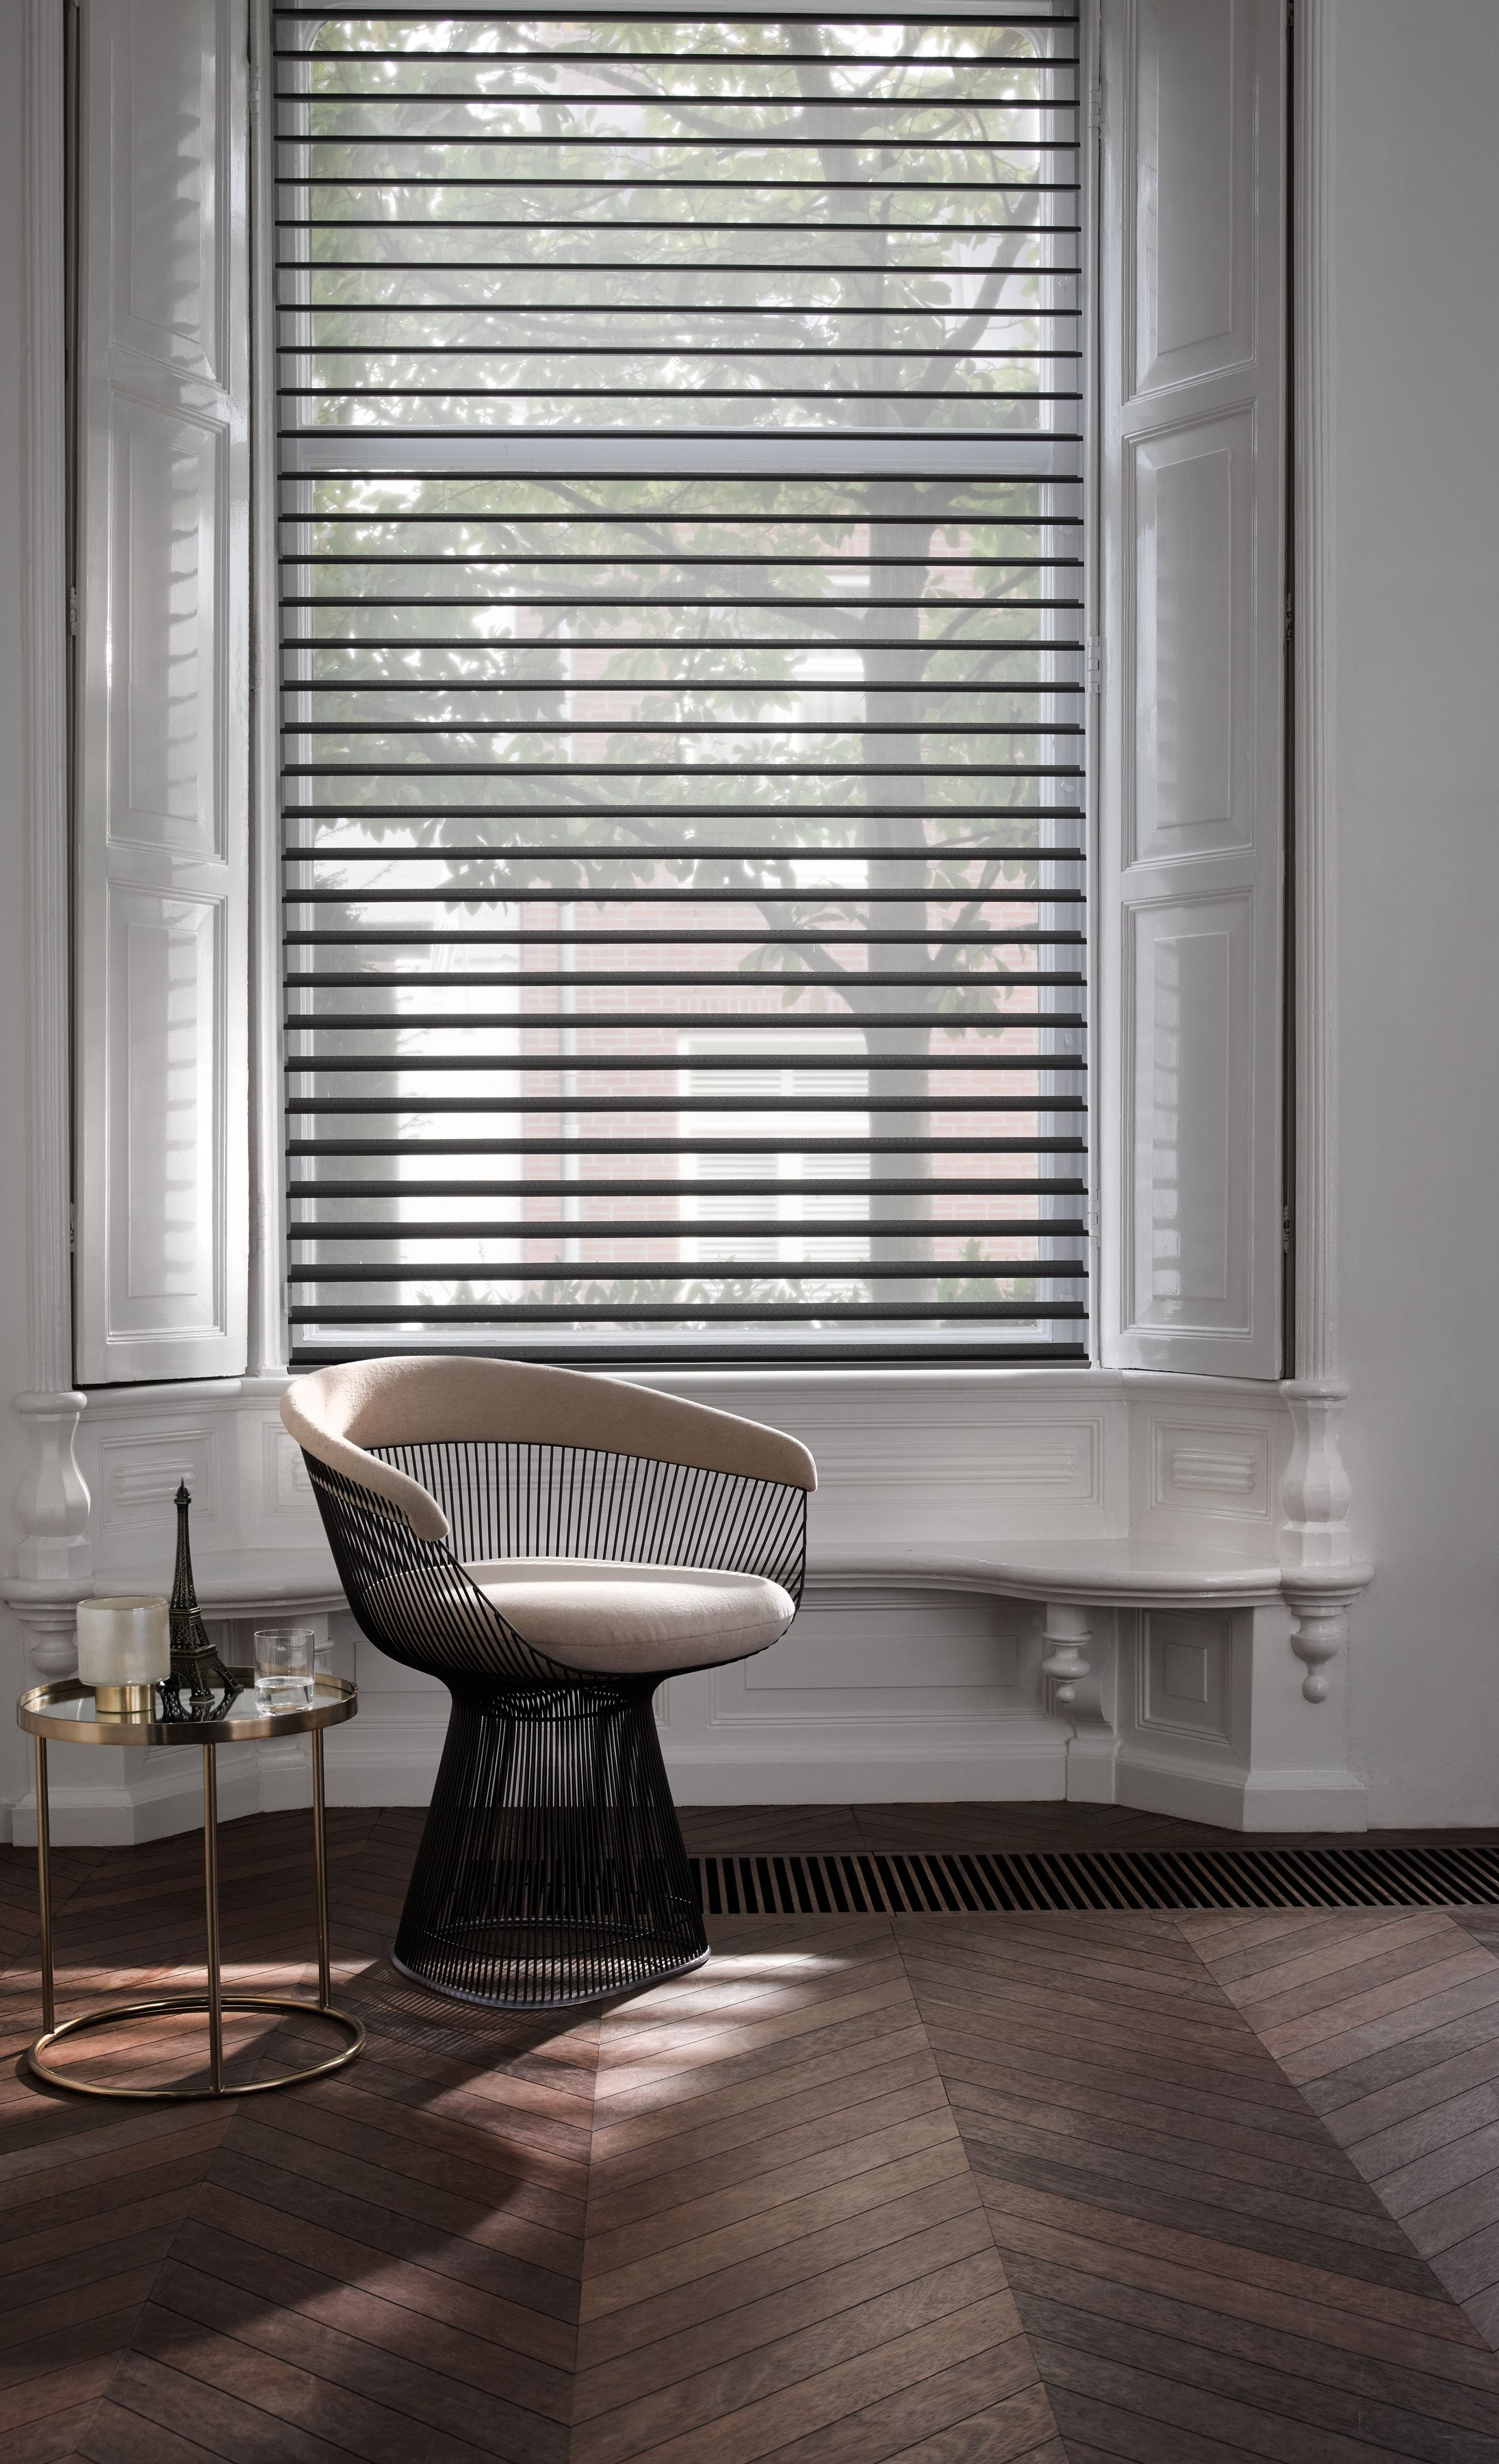 blinds mike duo pin shangri on lee silhouette by shade la